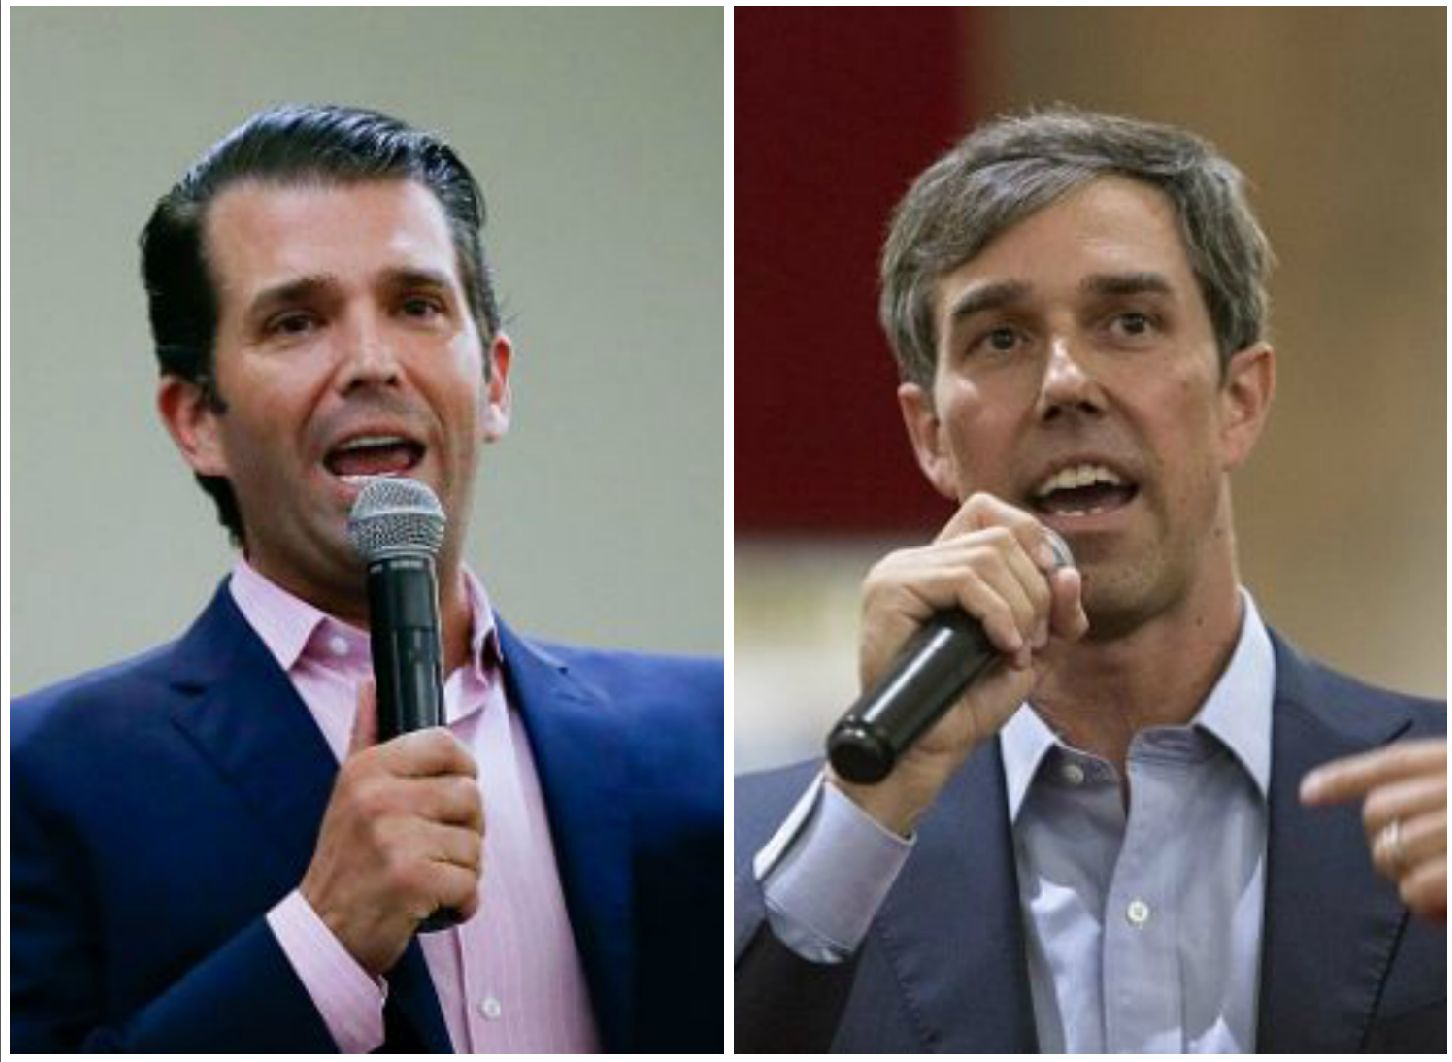 Beto O'Rourke, Donald Trump Jr.